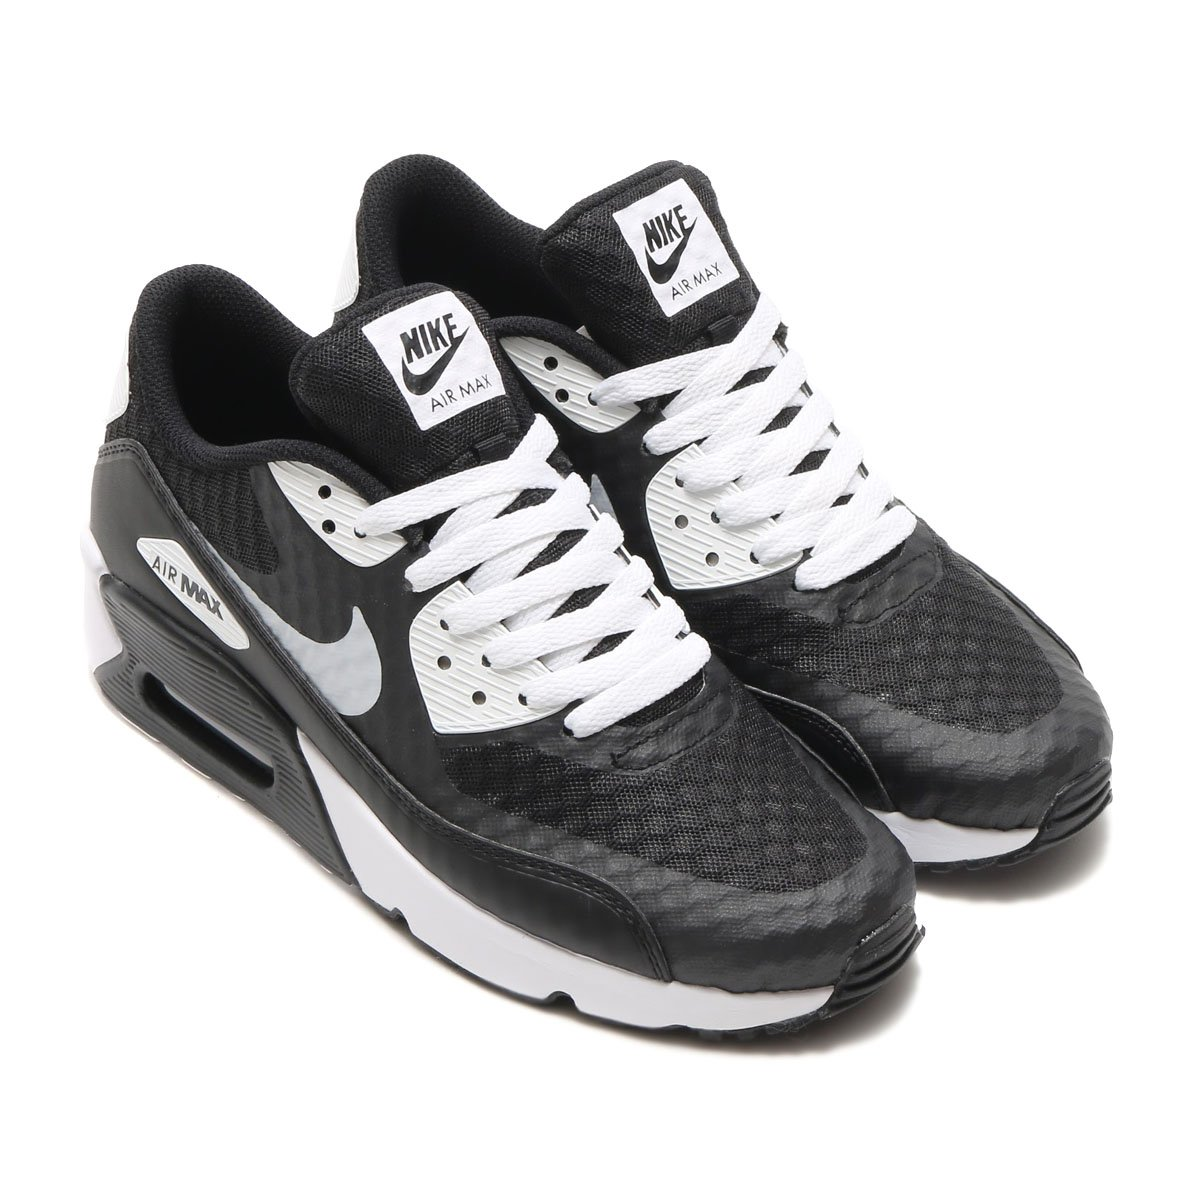 Nike Big Kids Air Max 90 Ultra 2.0 BR GS 881925-001 BLACK/WHITE Size 4Y